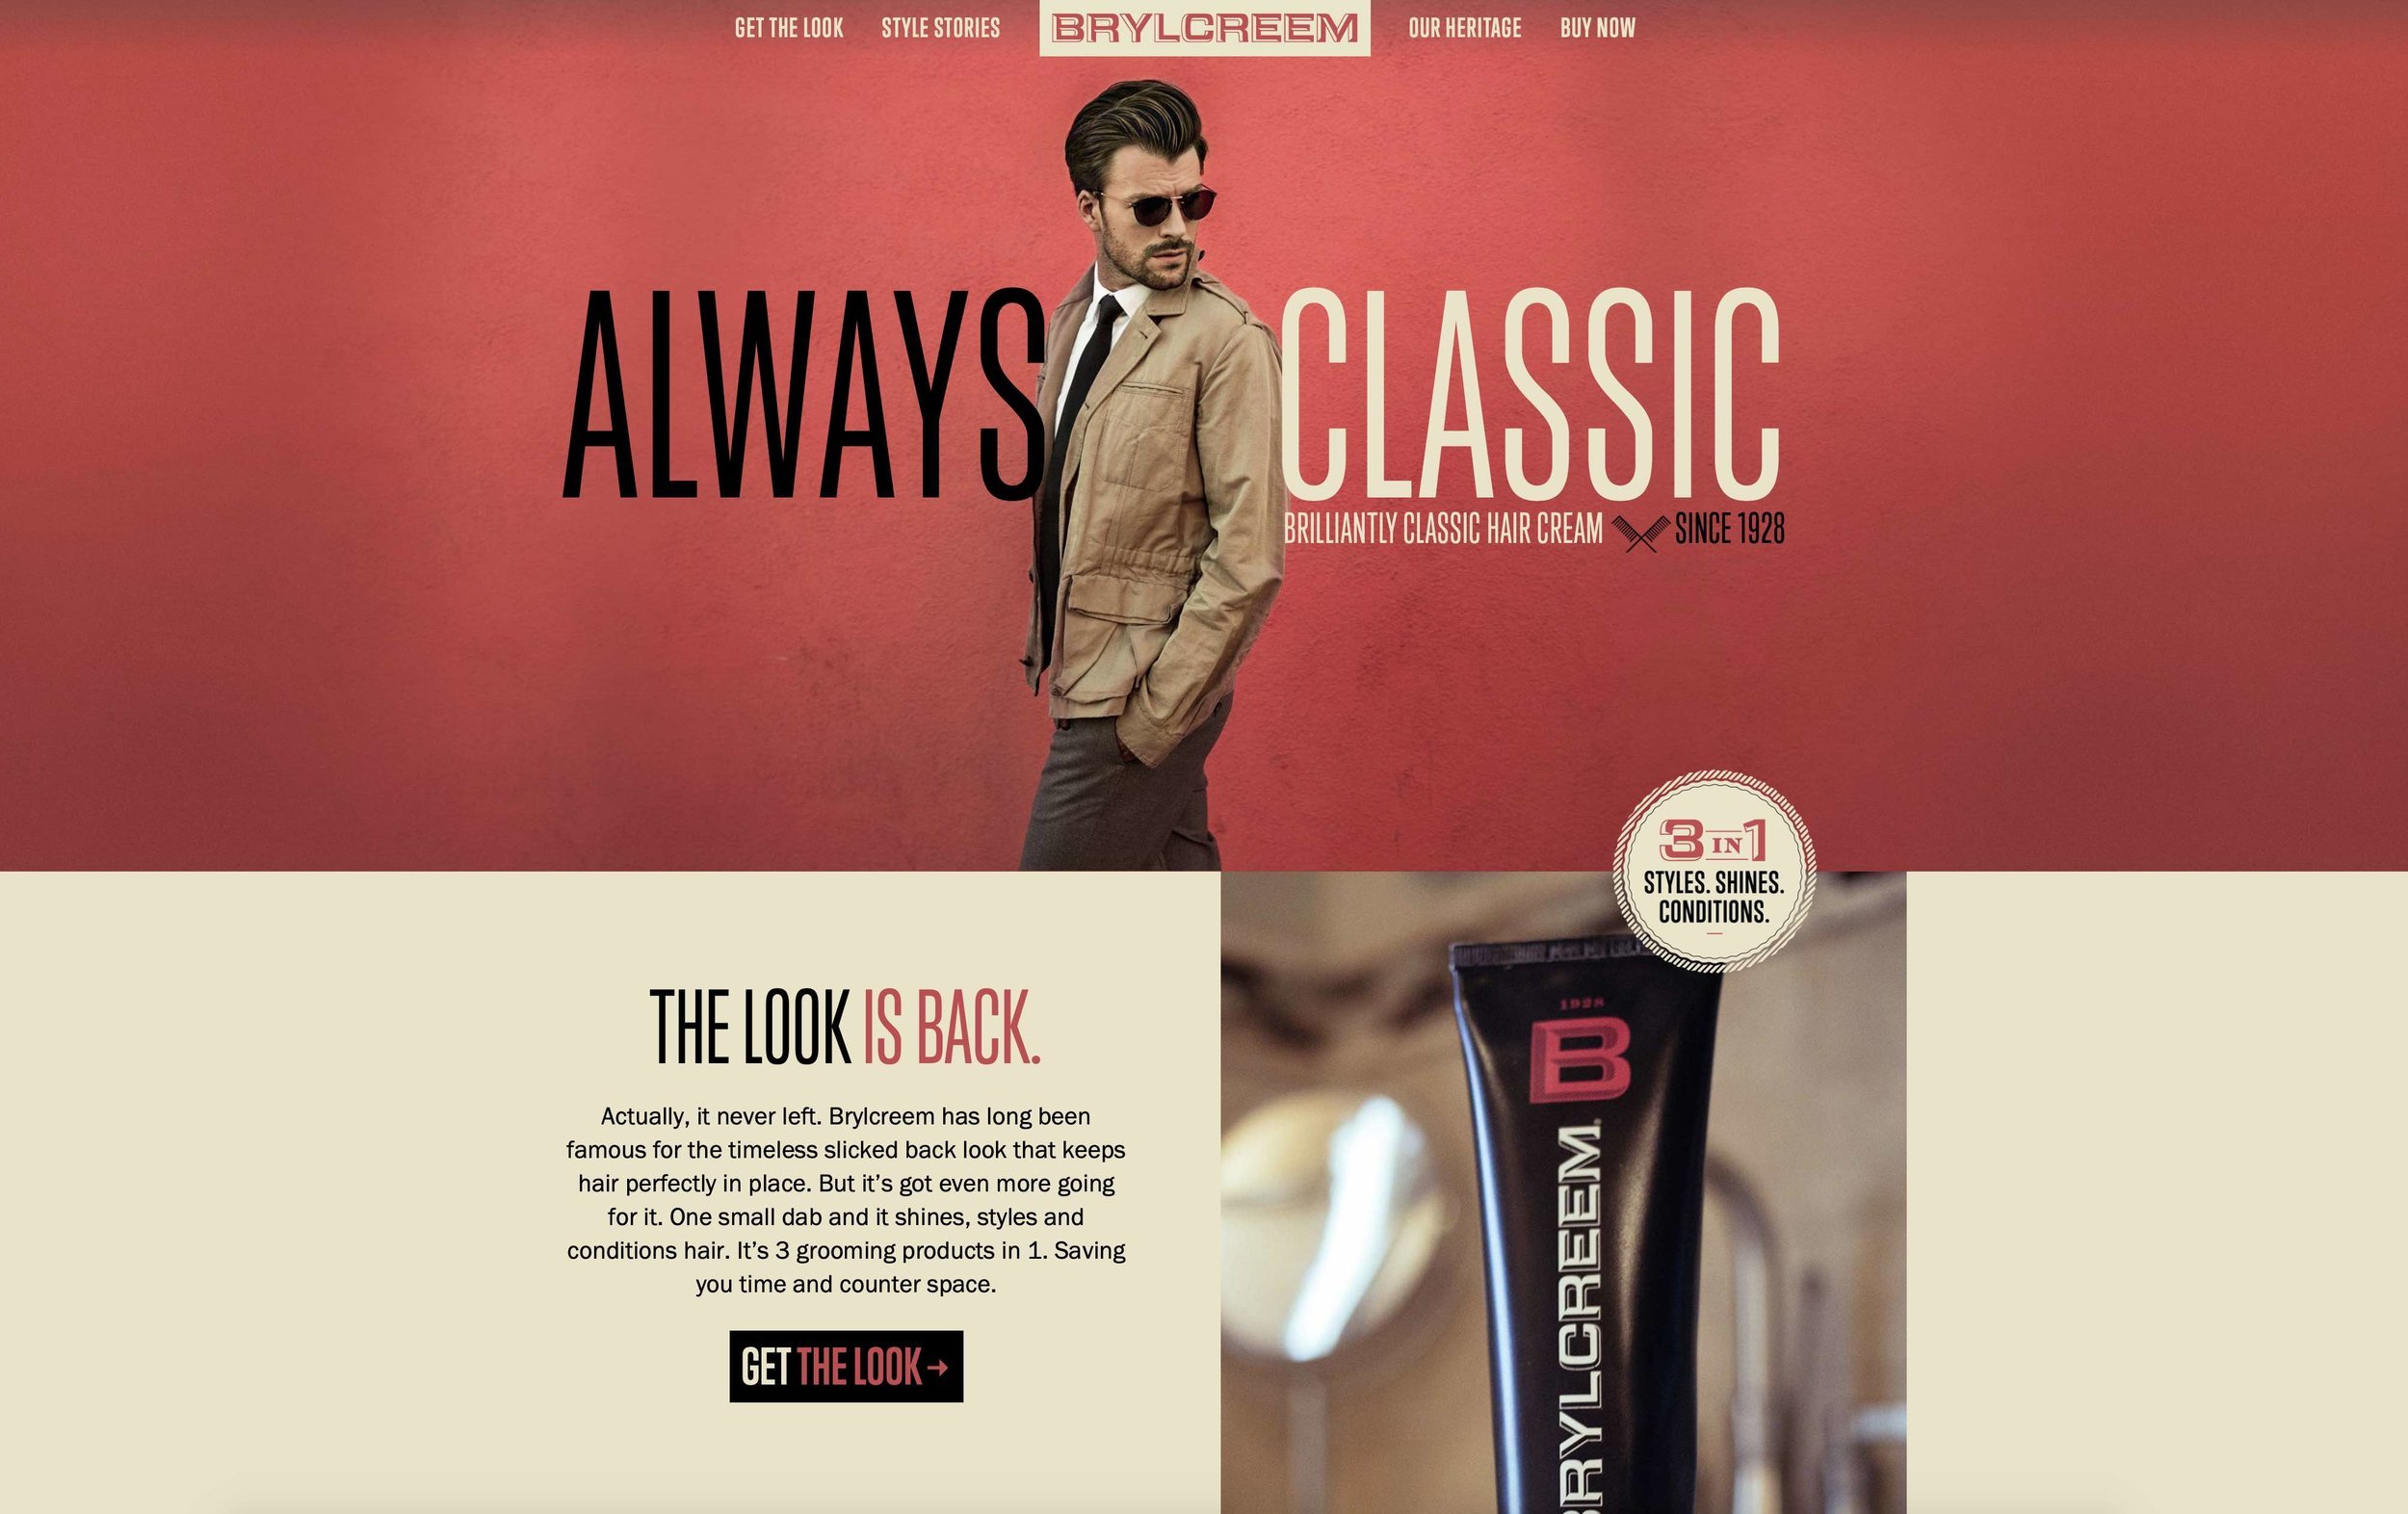 BRYLCREEM's Website → -